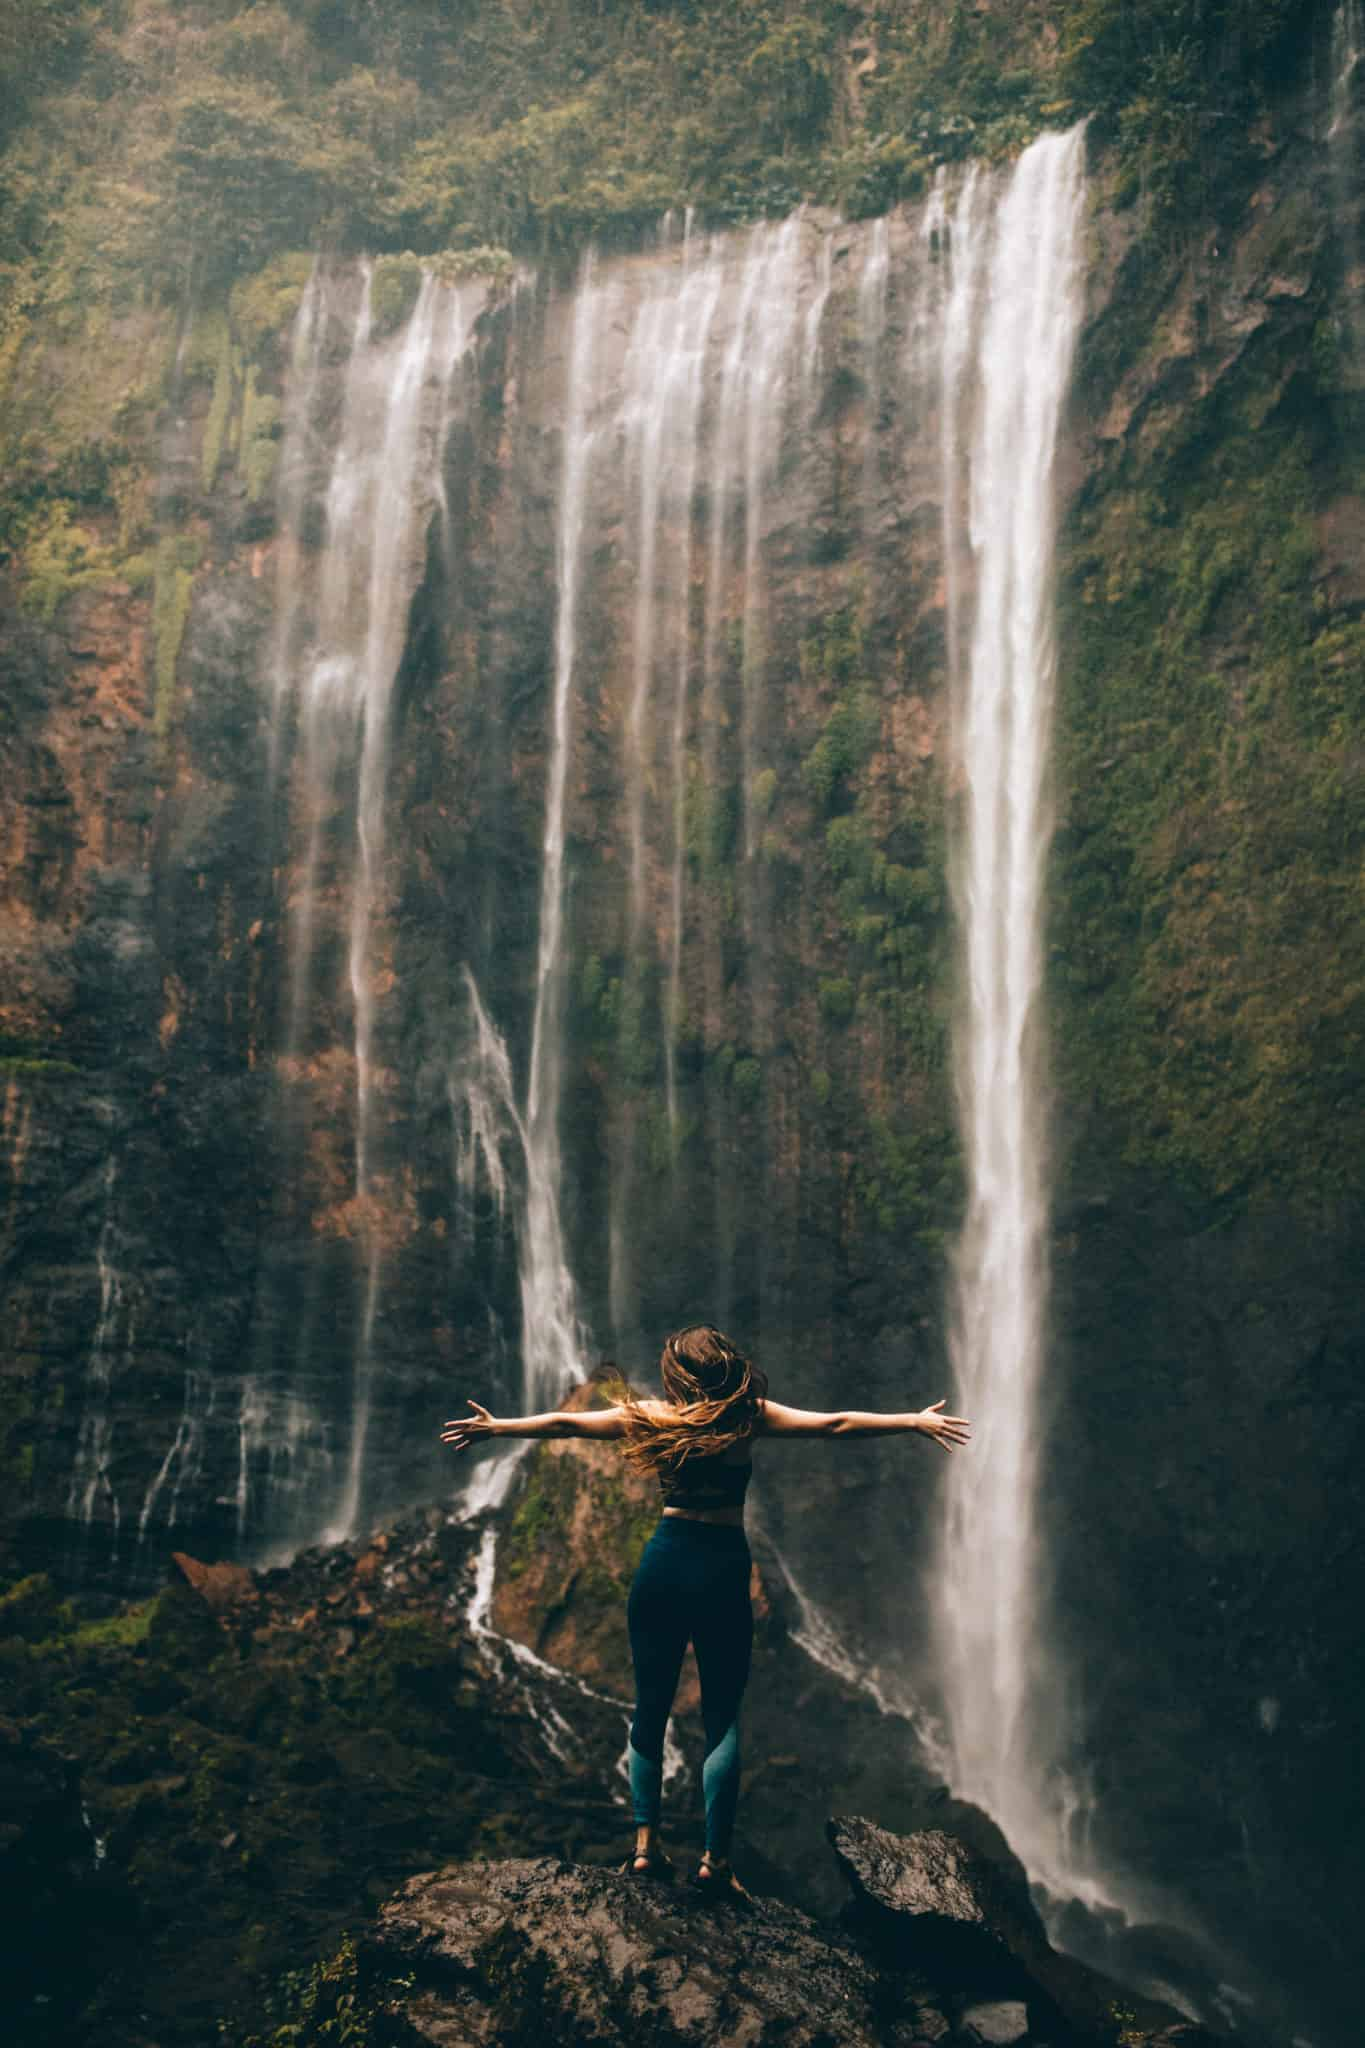 Emily standing below Tumpak Sewu Waterfall